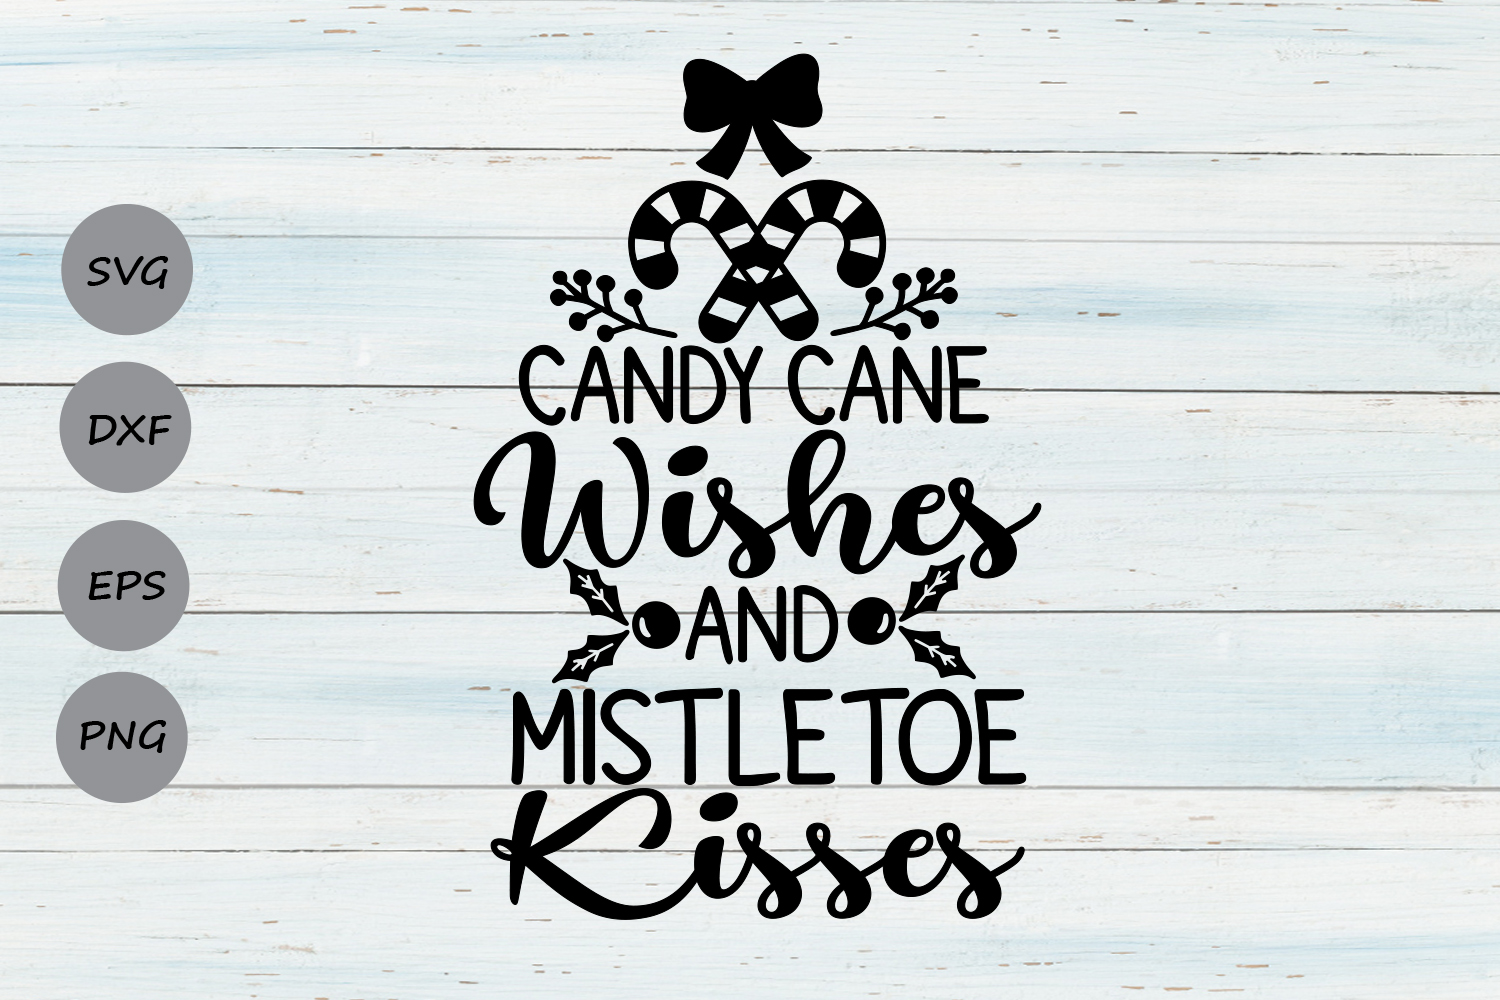 Download Free Candy Cane Wishes And Mistletoe Kisses Graphic By Cosmosfineart for Cricut Explore, Silhouette and other cutting machines.